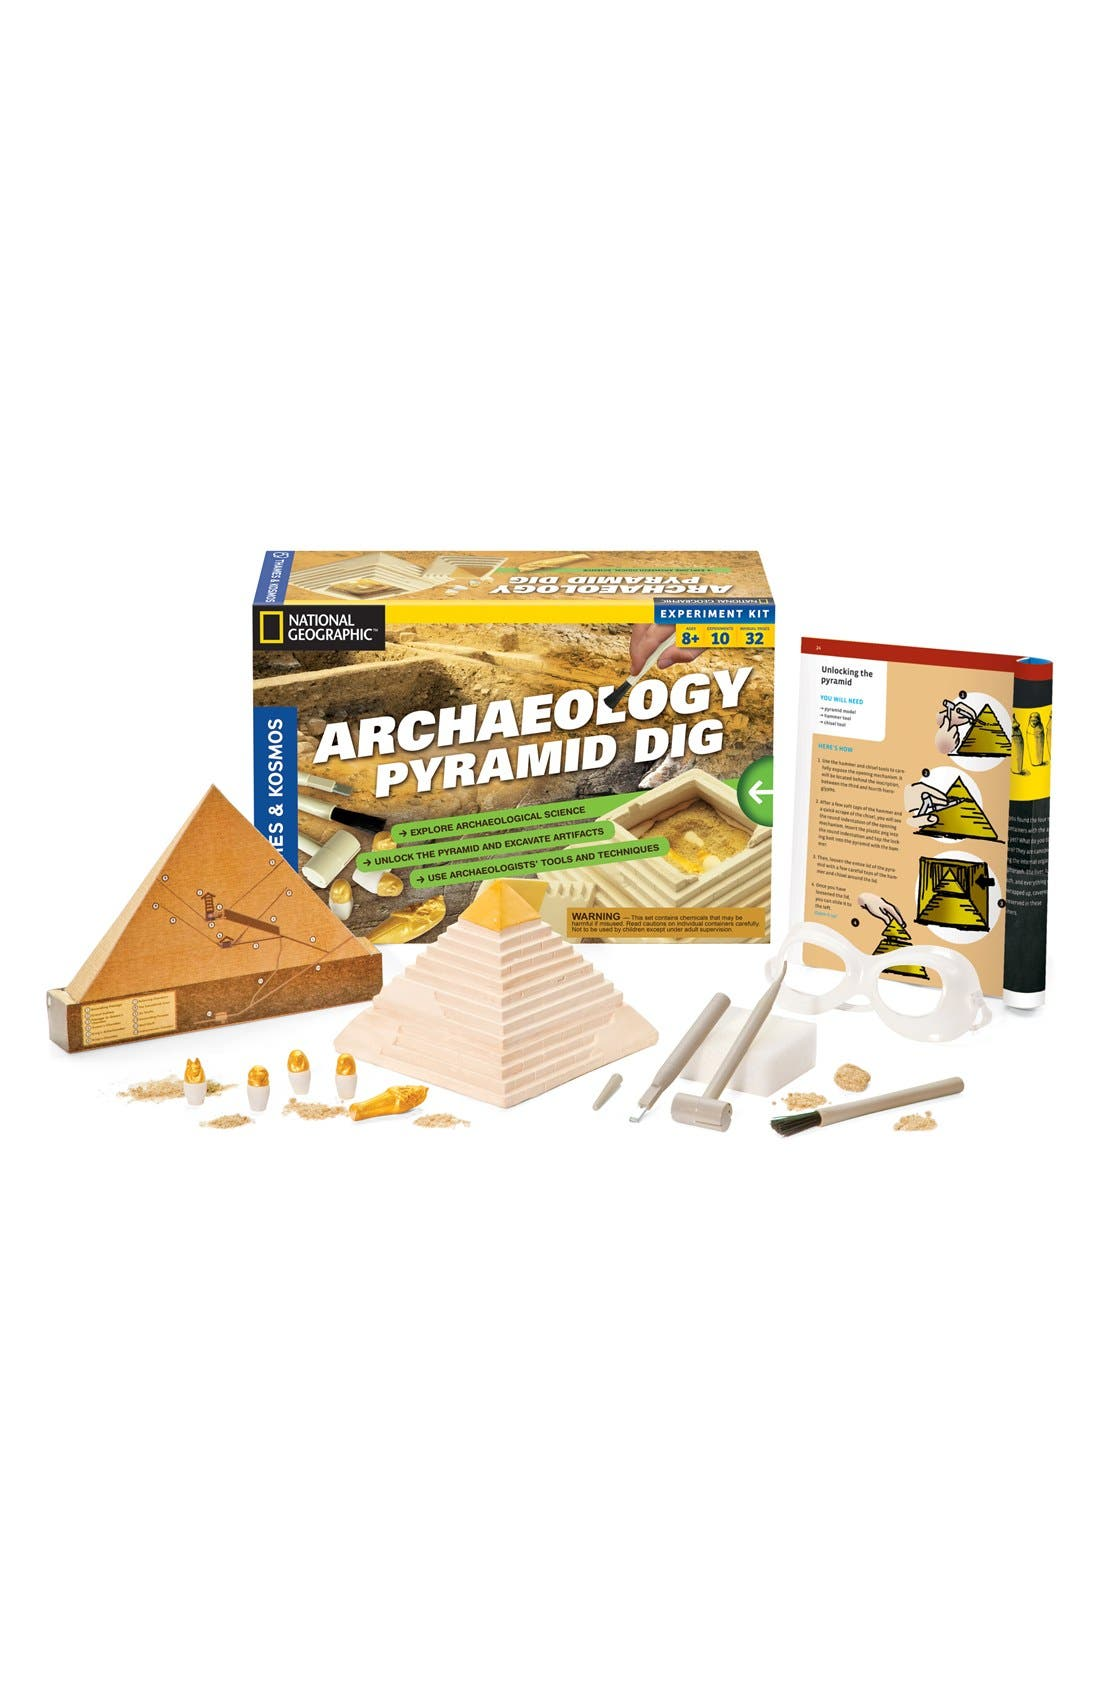 Thames & Kosmos 'Archaeology: Pyramid Dig 2.0' Play Kit